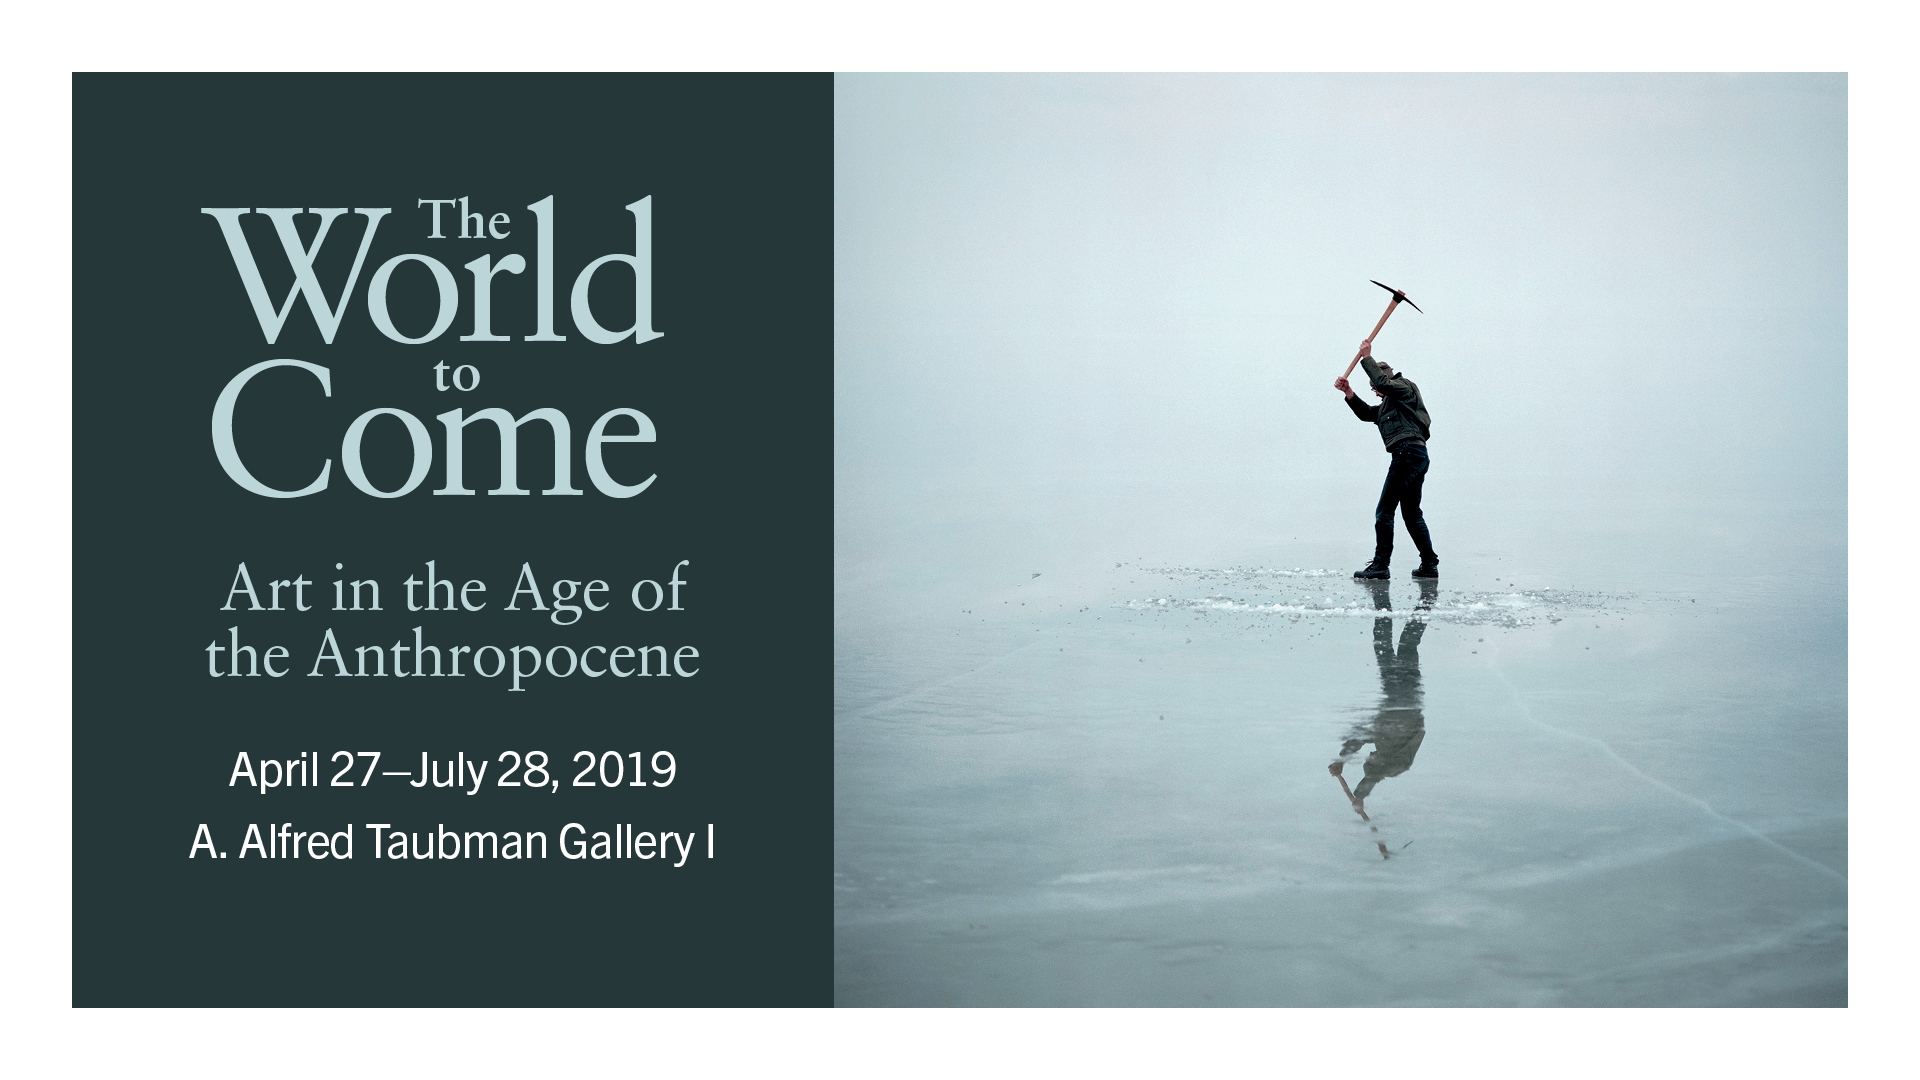 The World to Come: Art in the Age of the Anthropocene